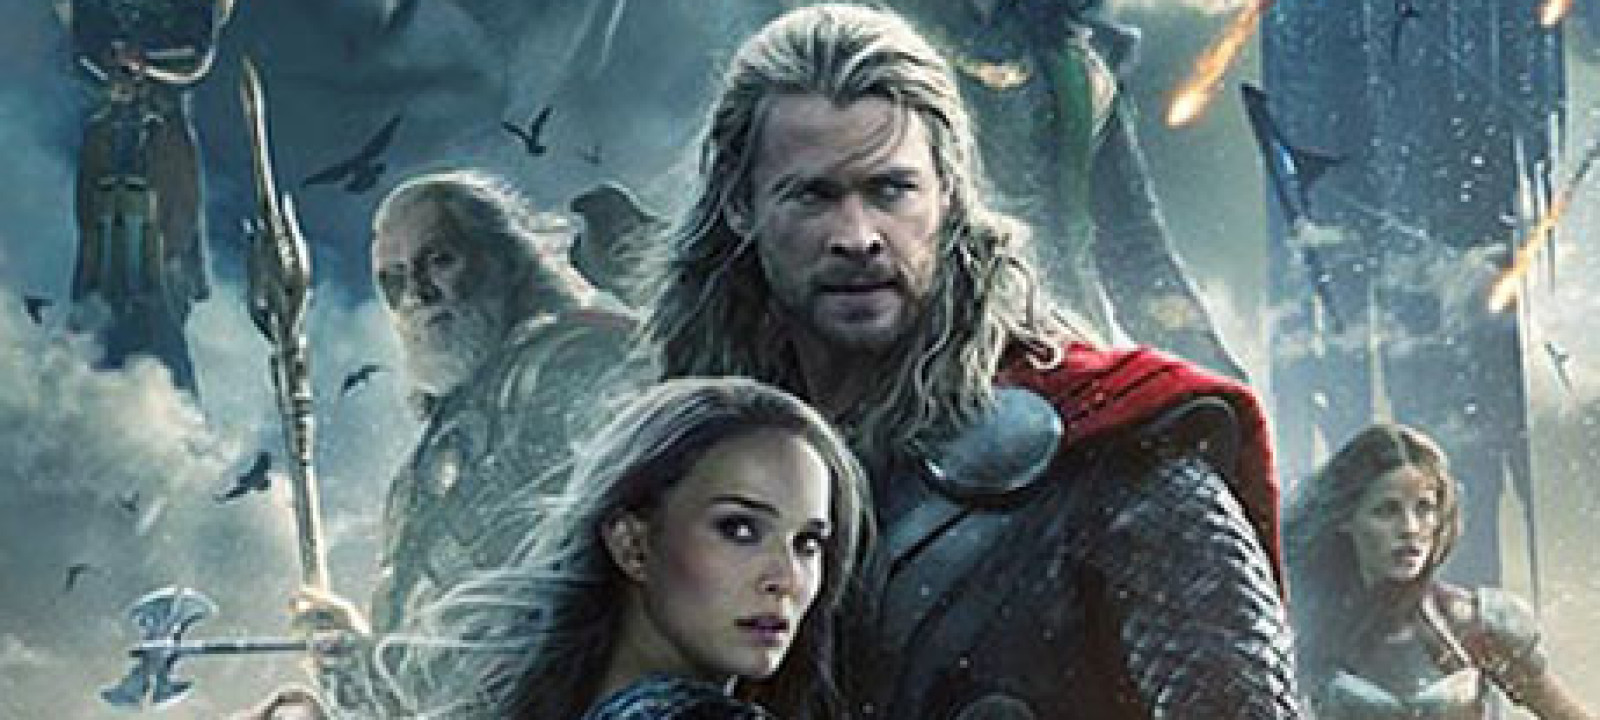 Thor Sequel, Poster